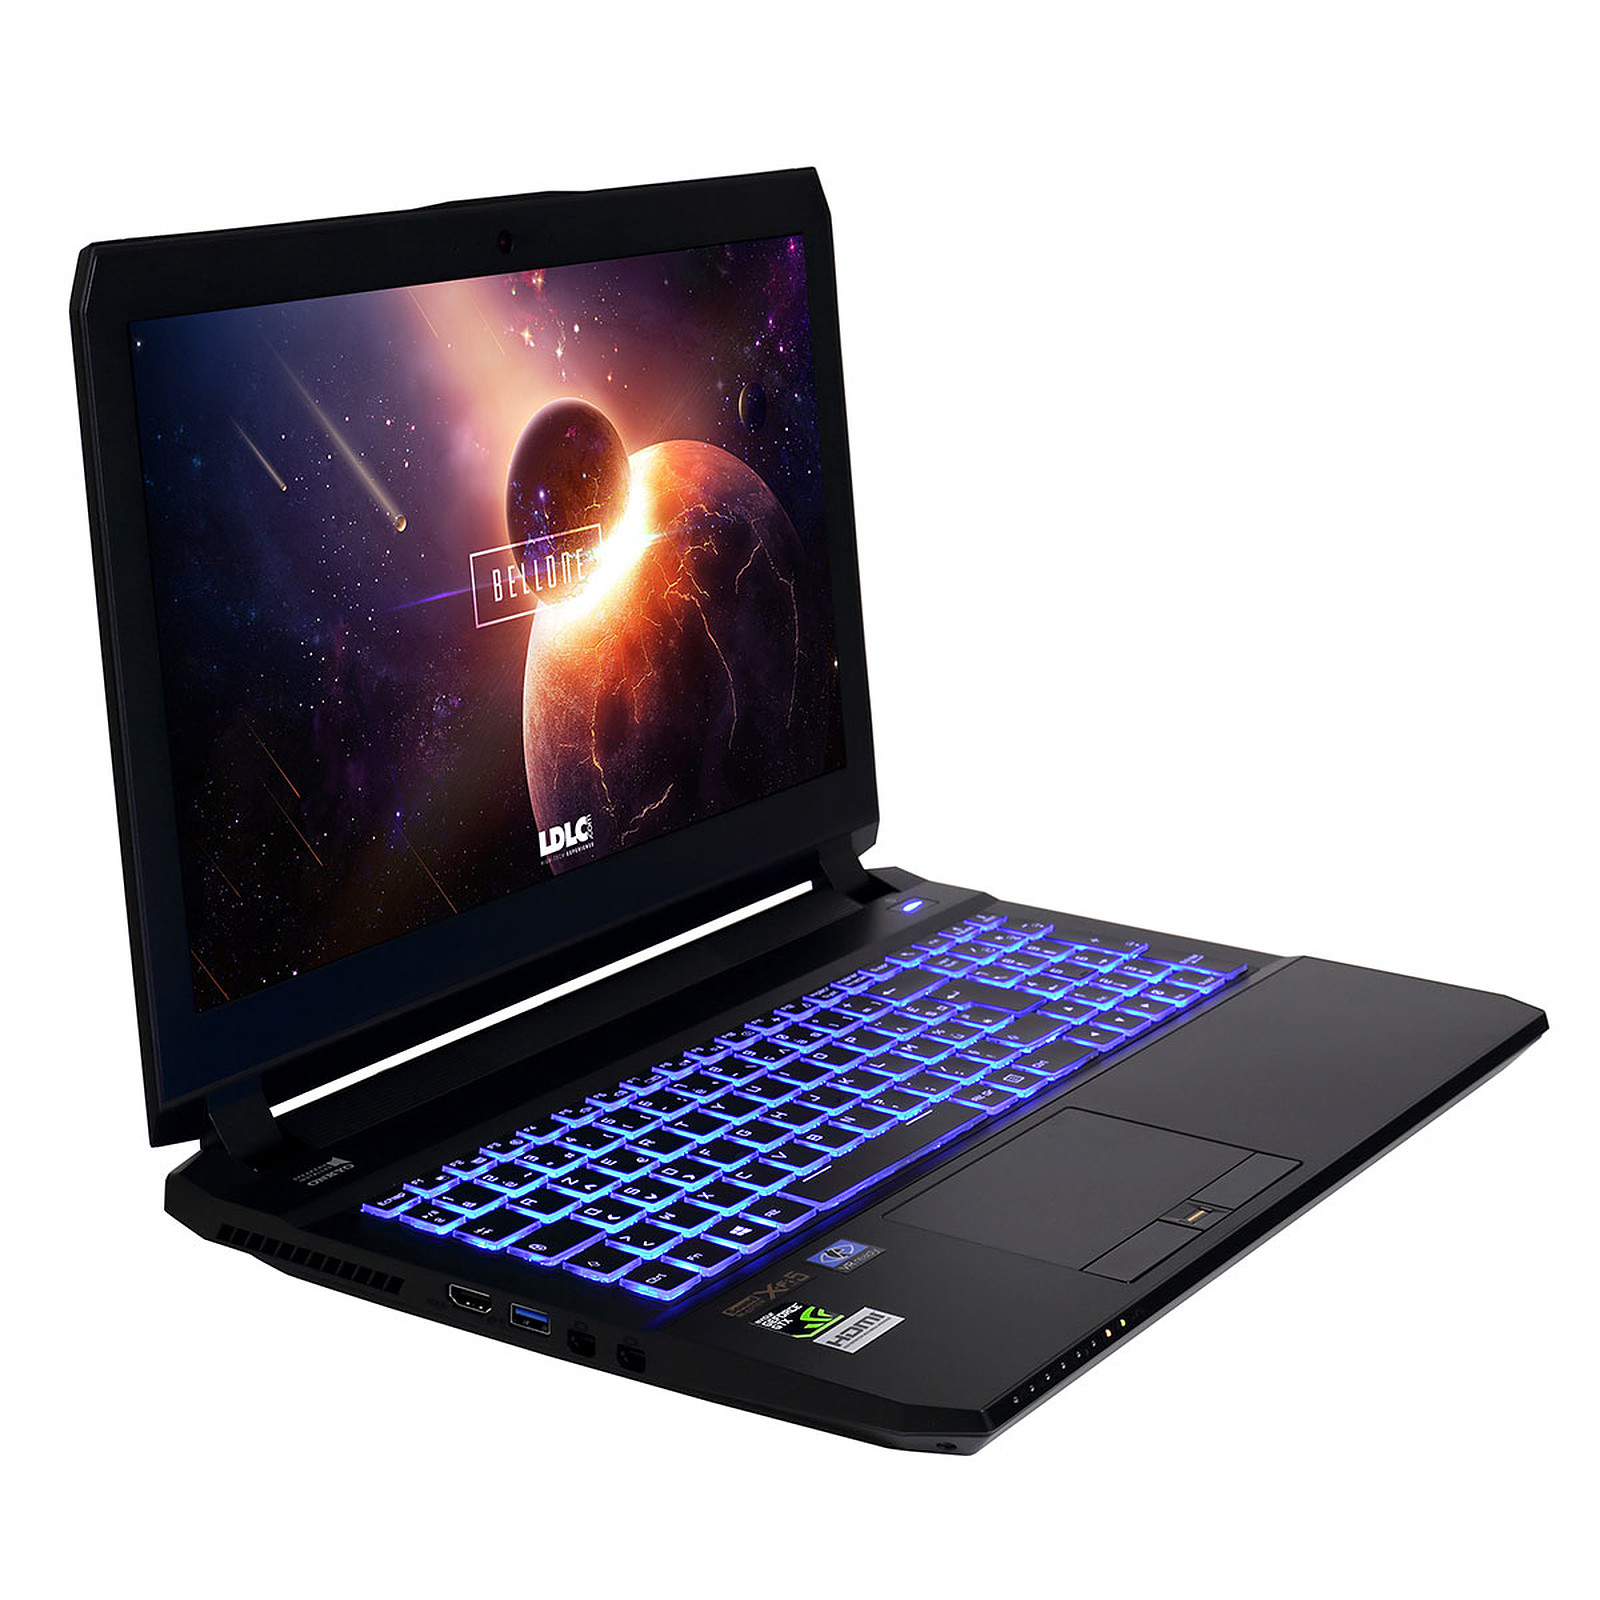 LDLC Bellone Z60A-I7-16-H20S10-P10